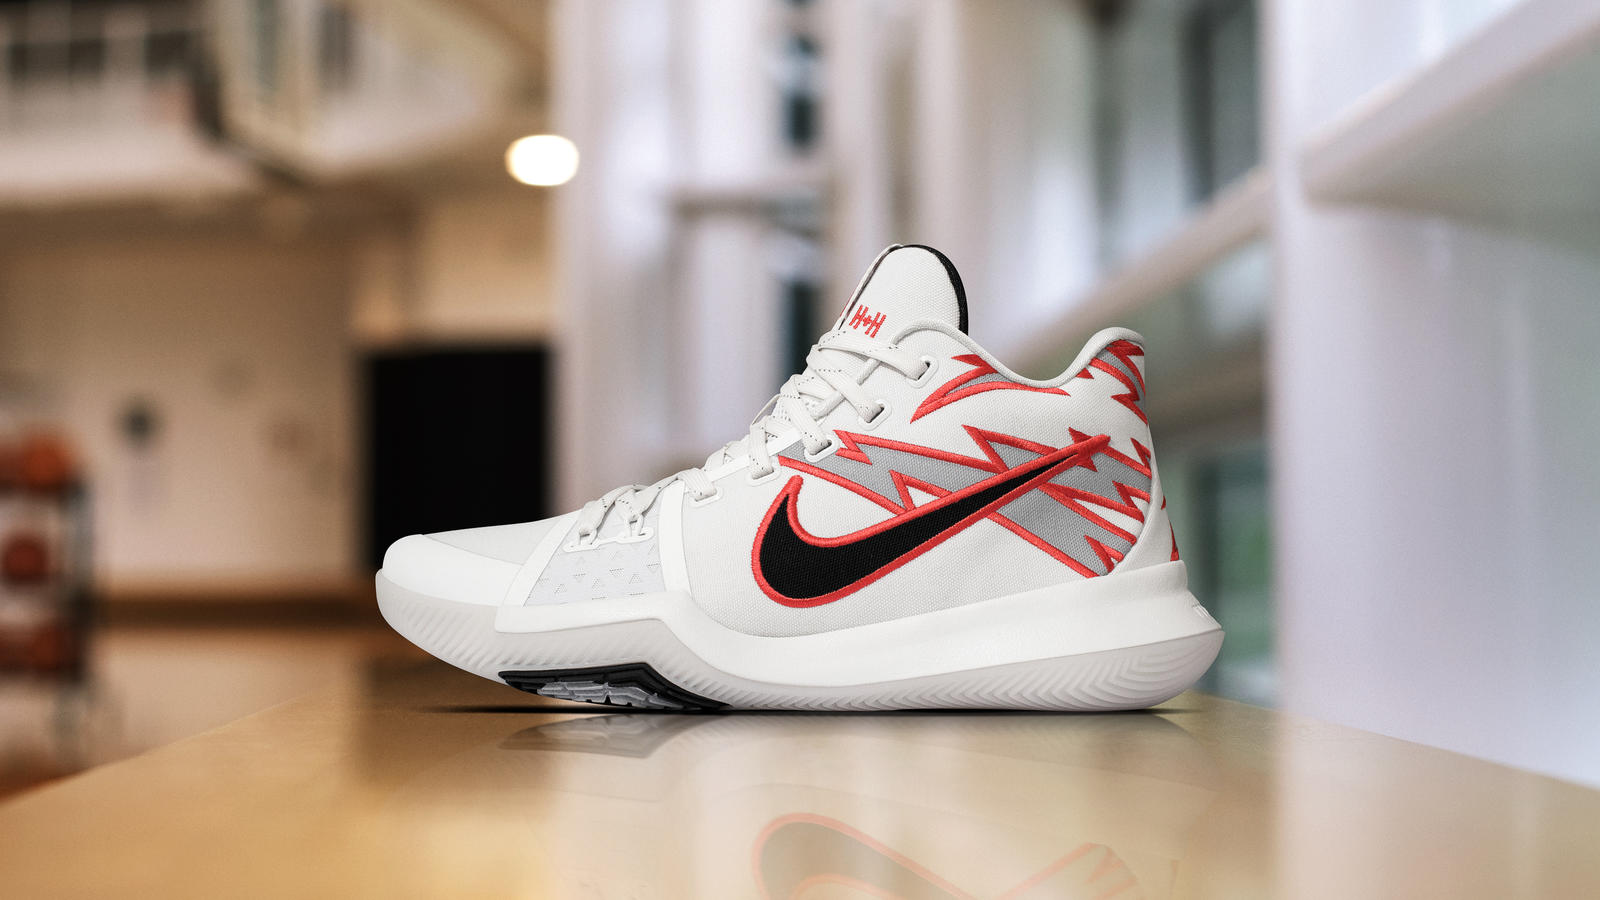 new products 3fc65 2b2e3 KYRIE 3 PE - Nike News